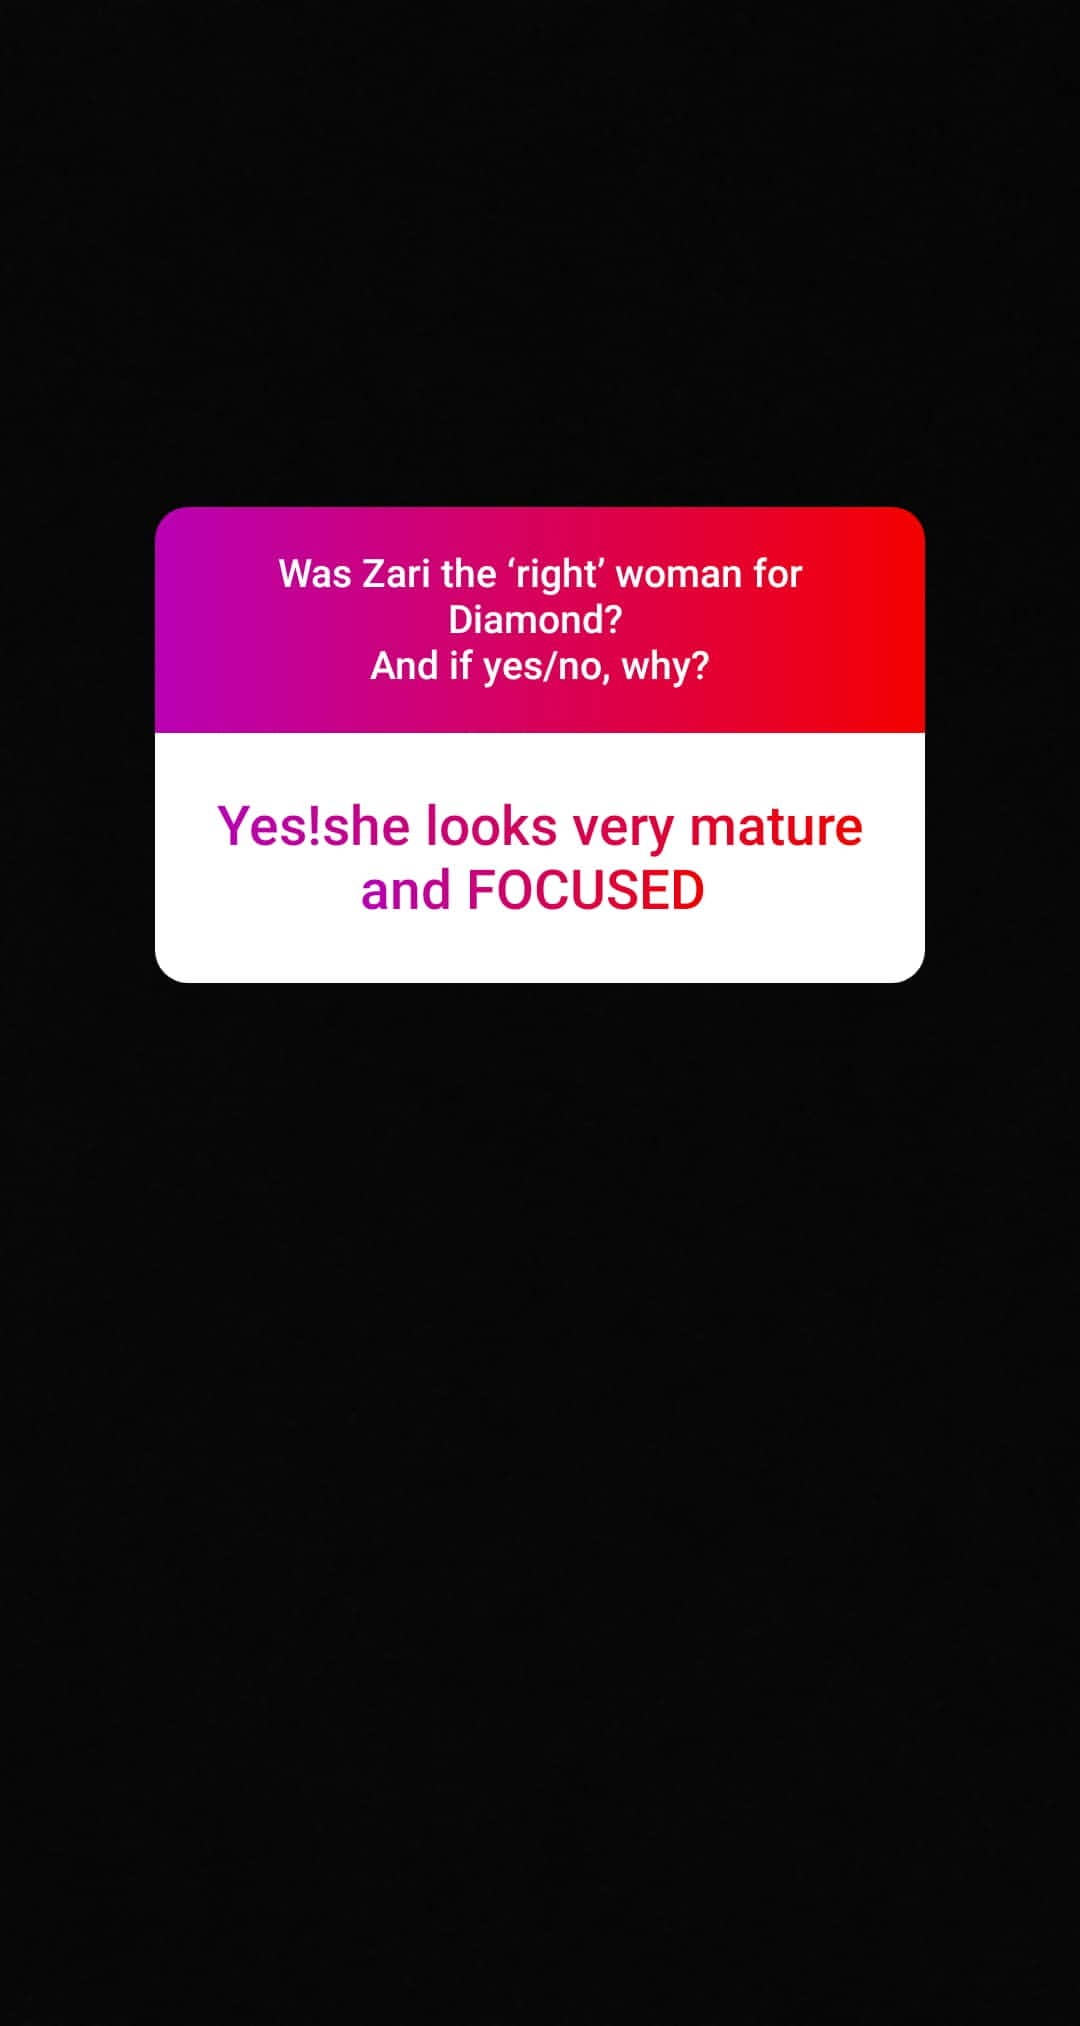 51449436 2273883252882779 6608872118936912029 n - Zari is the only woman Diamond Platnumz could have settled down with – poll